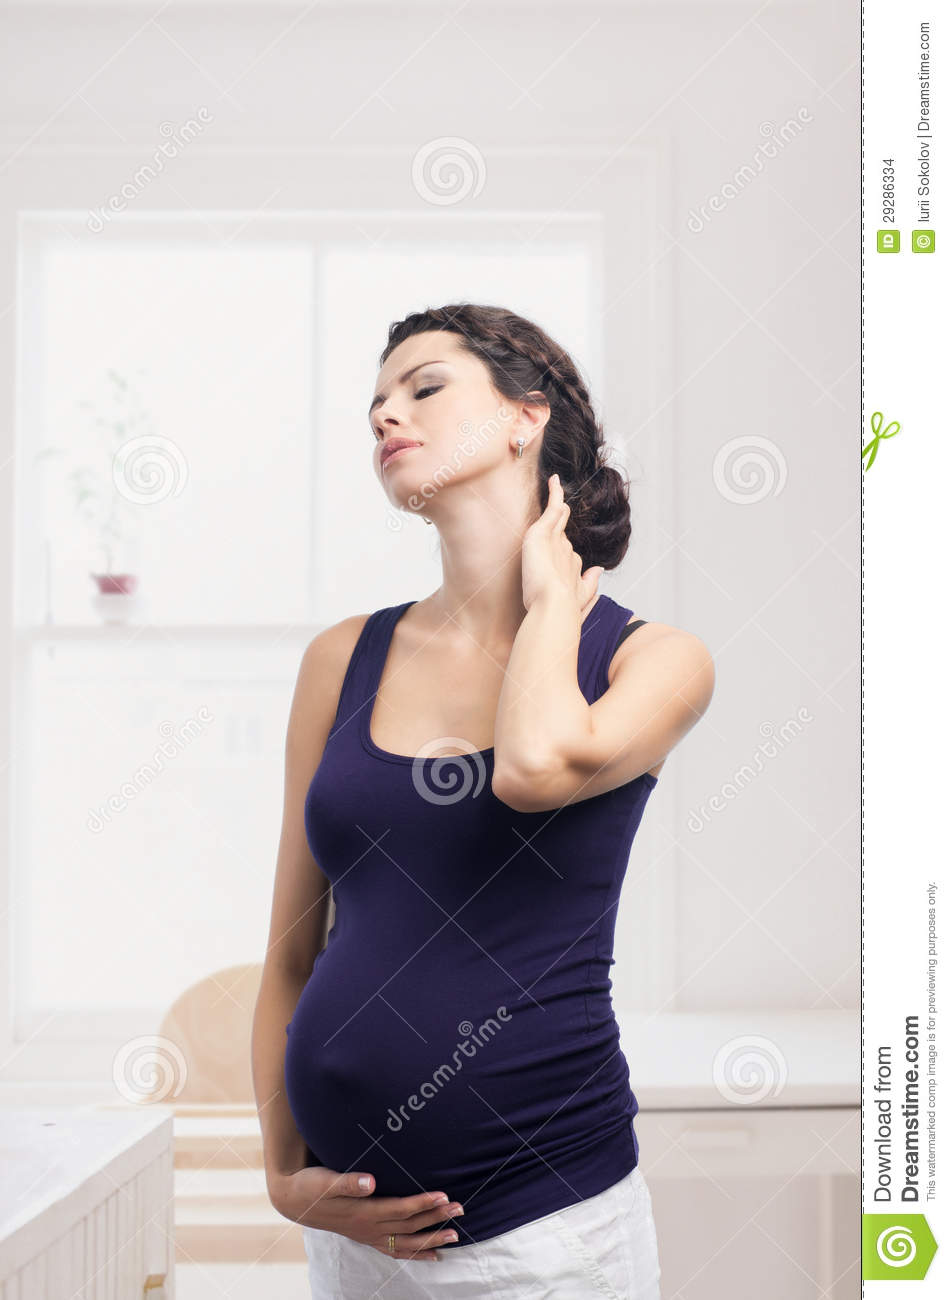 Pregnant woman standing with a pain in the neck